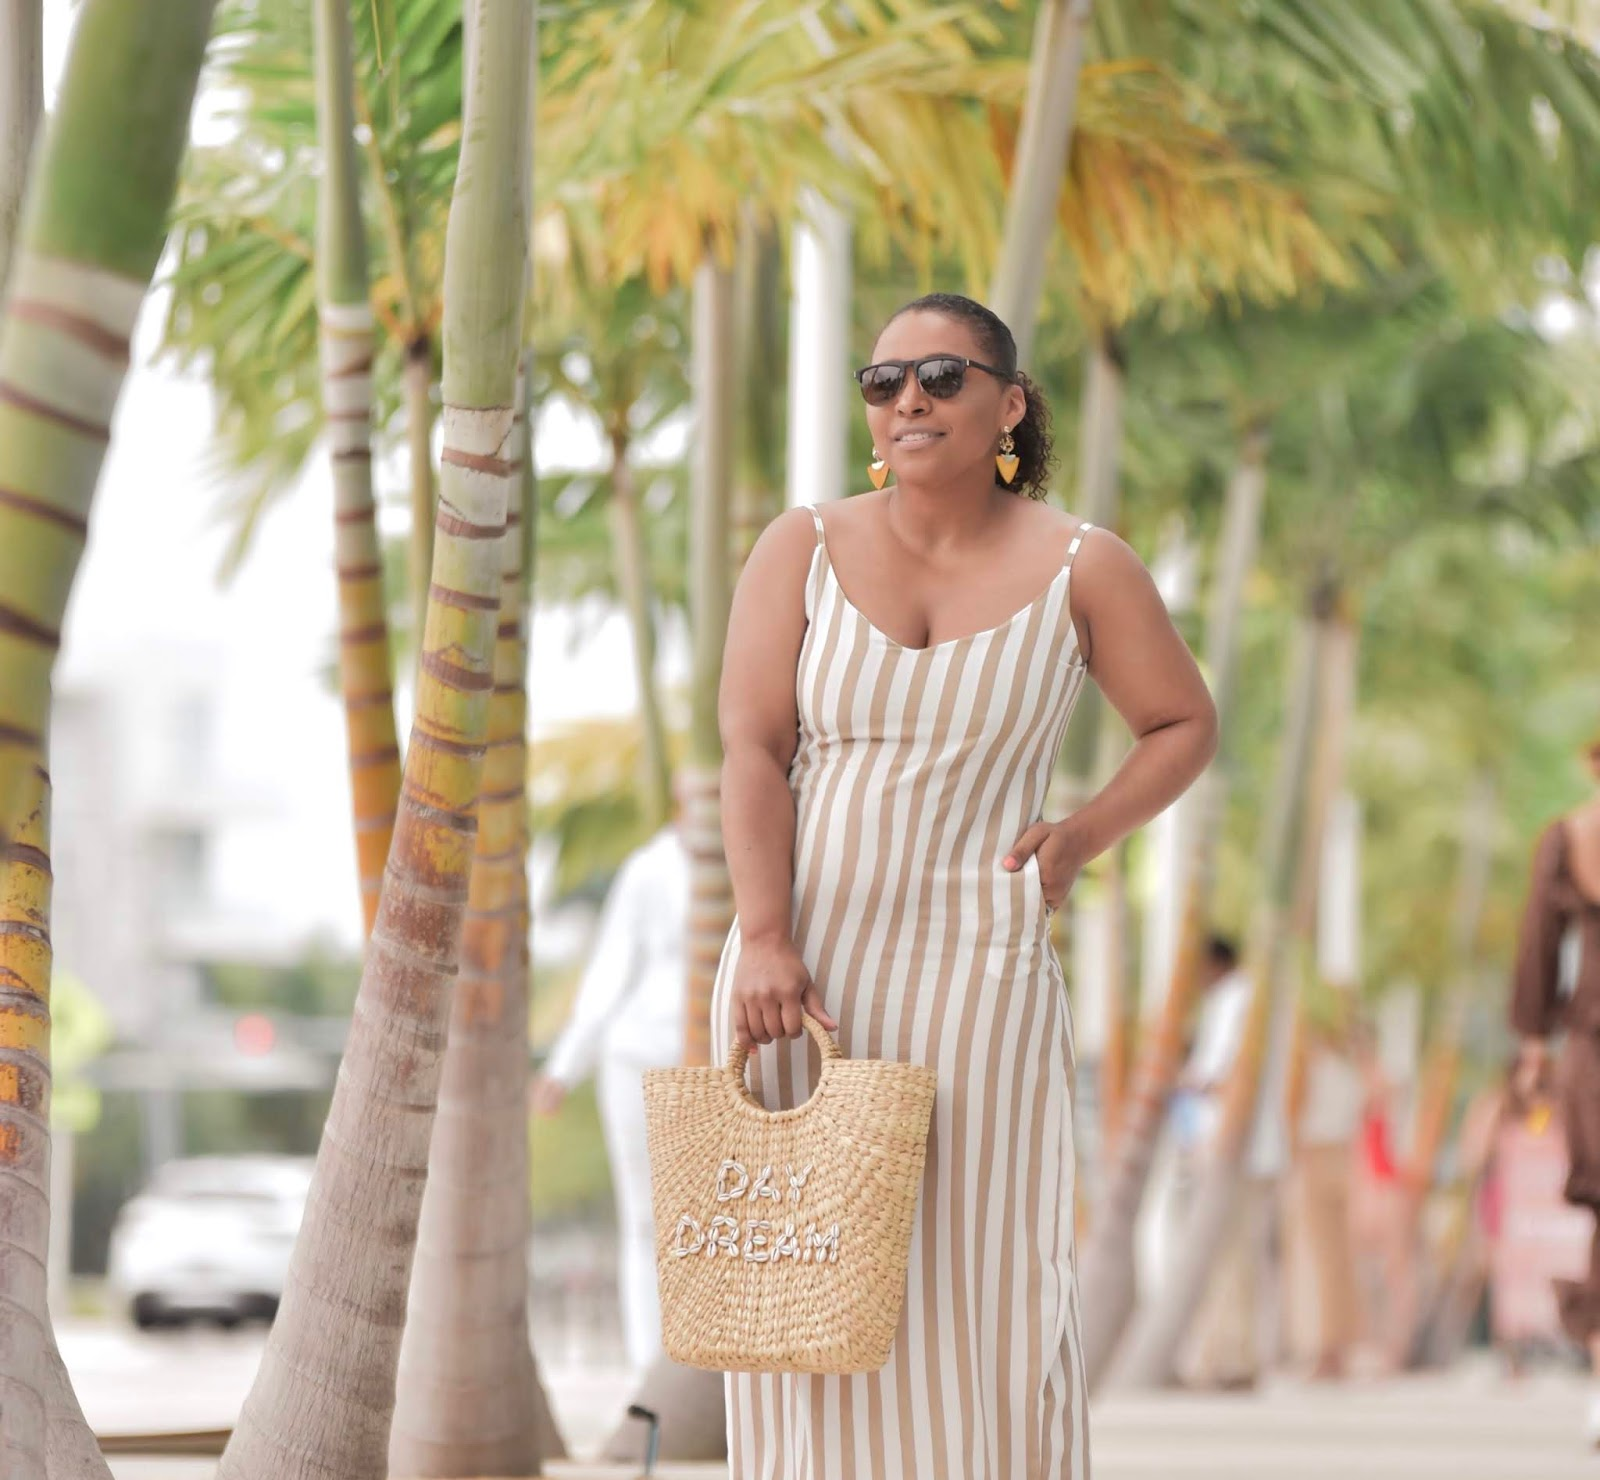 Monday Swimwear, Miami Swimweek, amiclubwear, maxi dress, maxi dress with pockets, striped maxi dress, summer outfit ideas